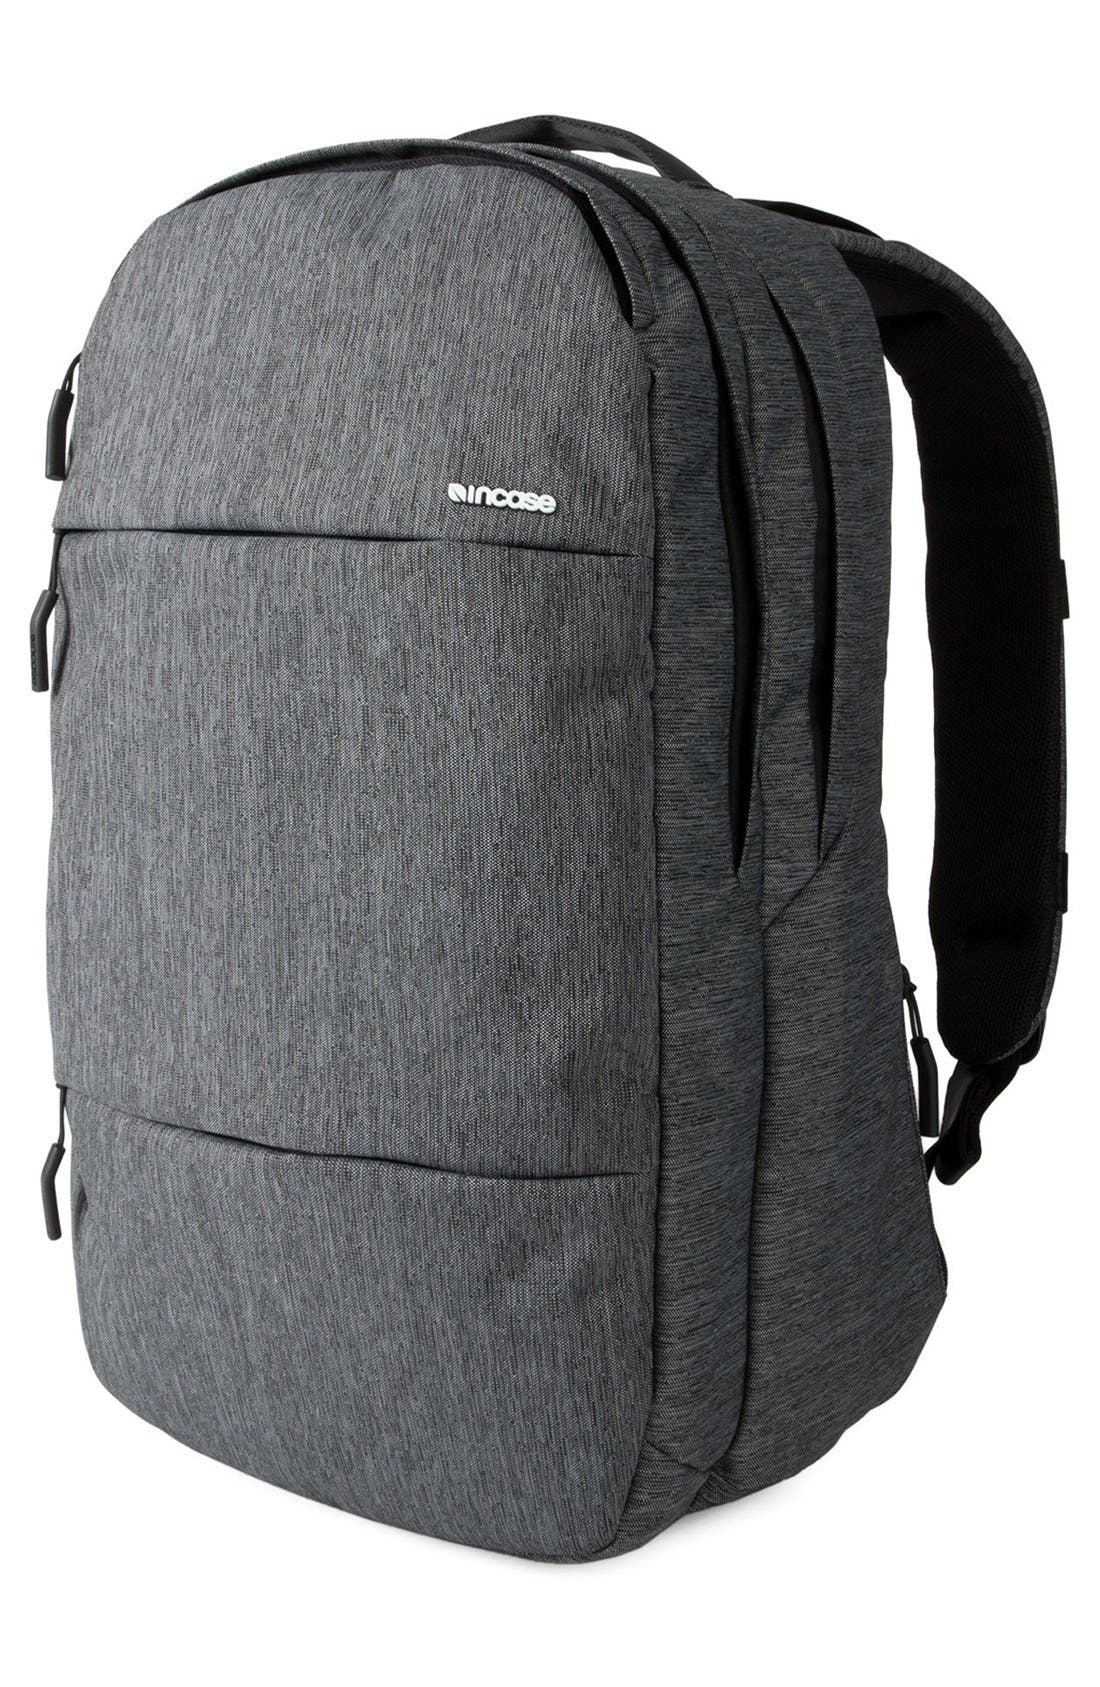 City Collection Backpack,                             Alternate thumbnail 5, color,                             HEATHER BLACK/ GUNMETAL GREY